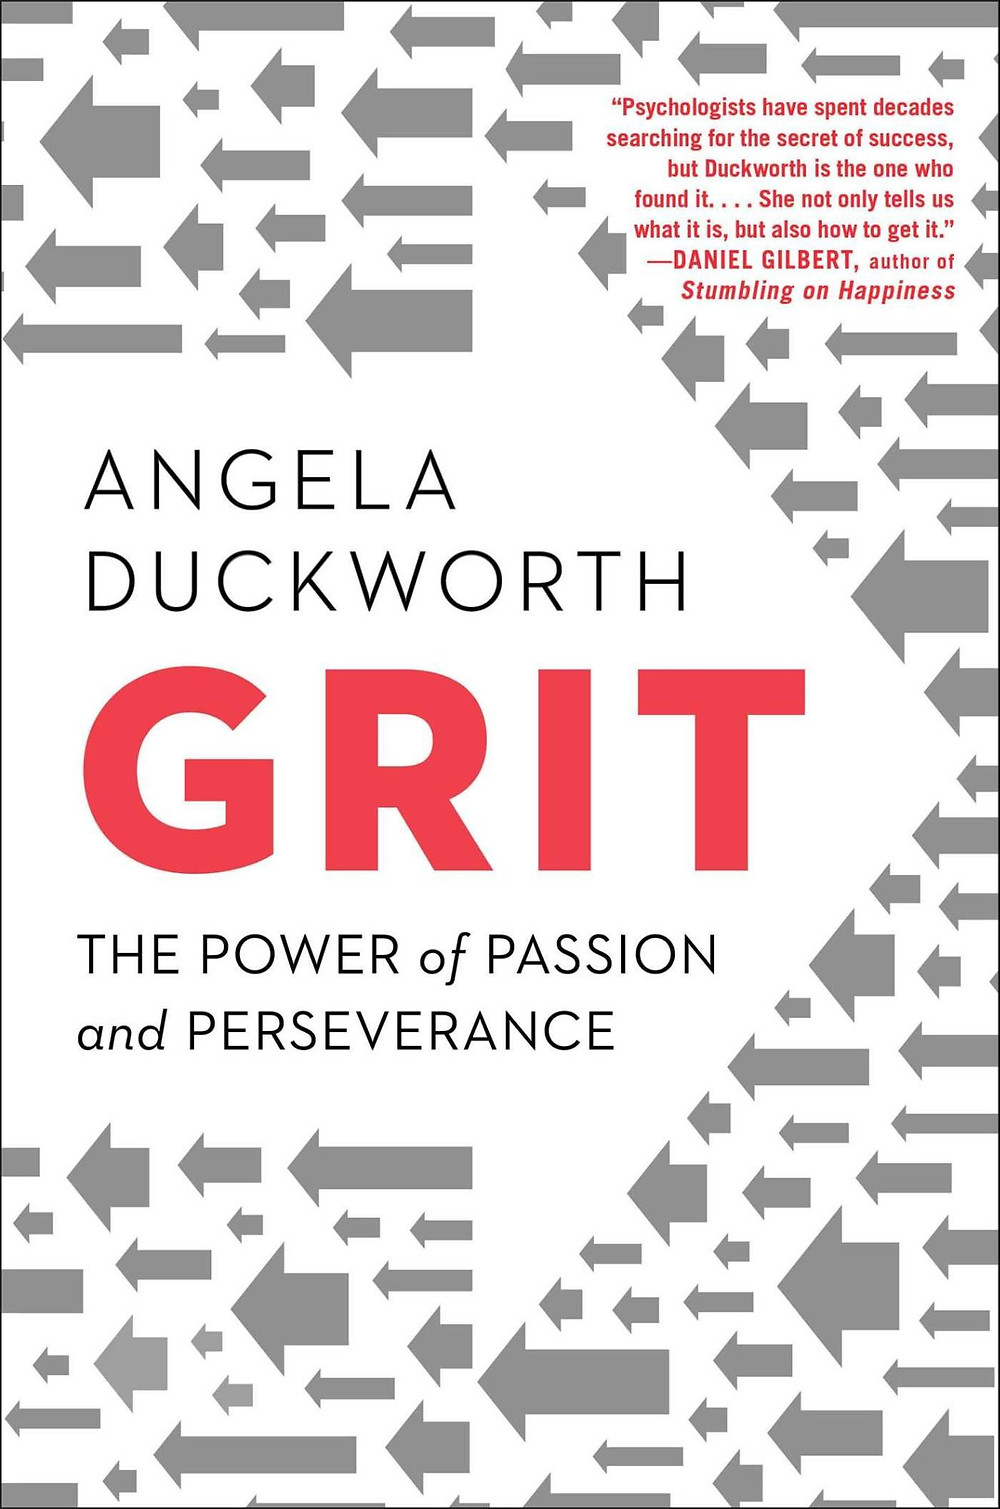 Top 10 Books to Read for the Right Business Mindset - The Power of Passion and Perseverance - DSers